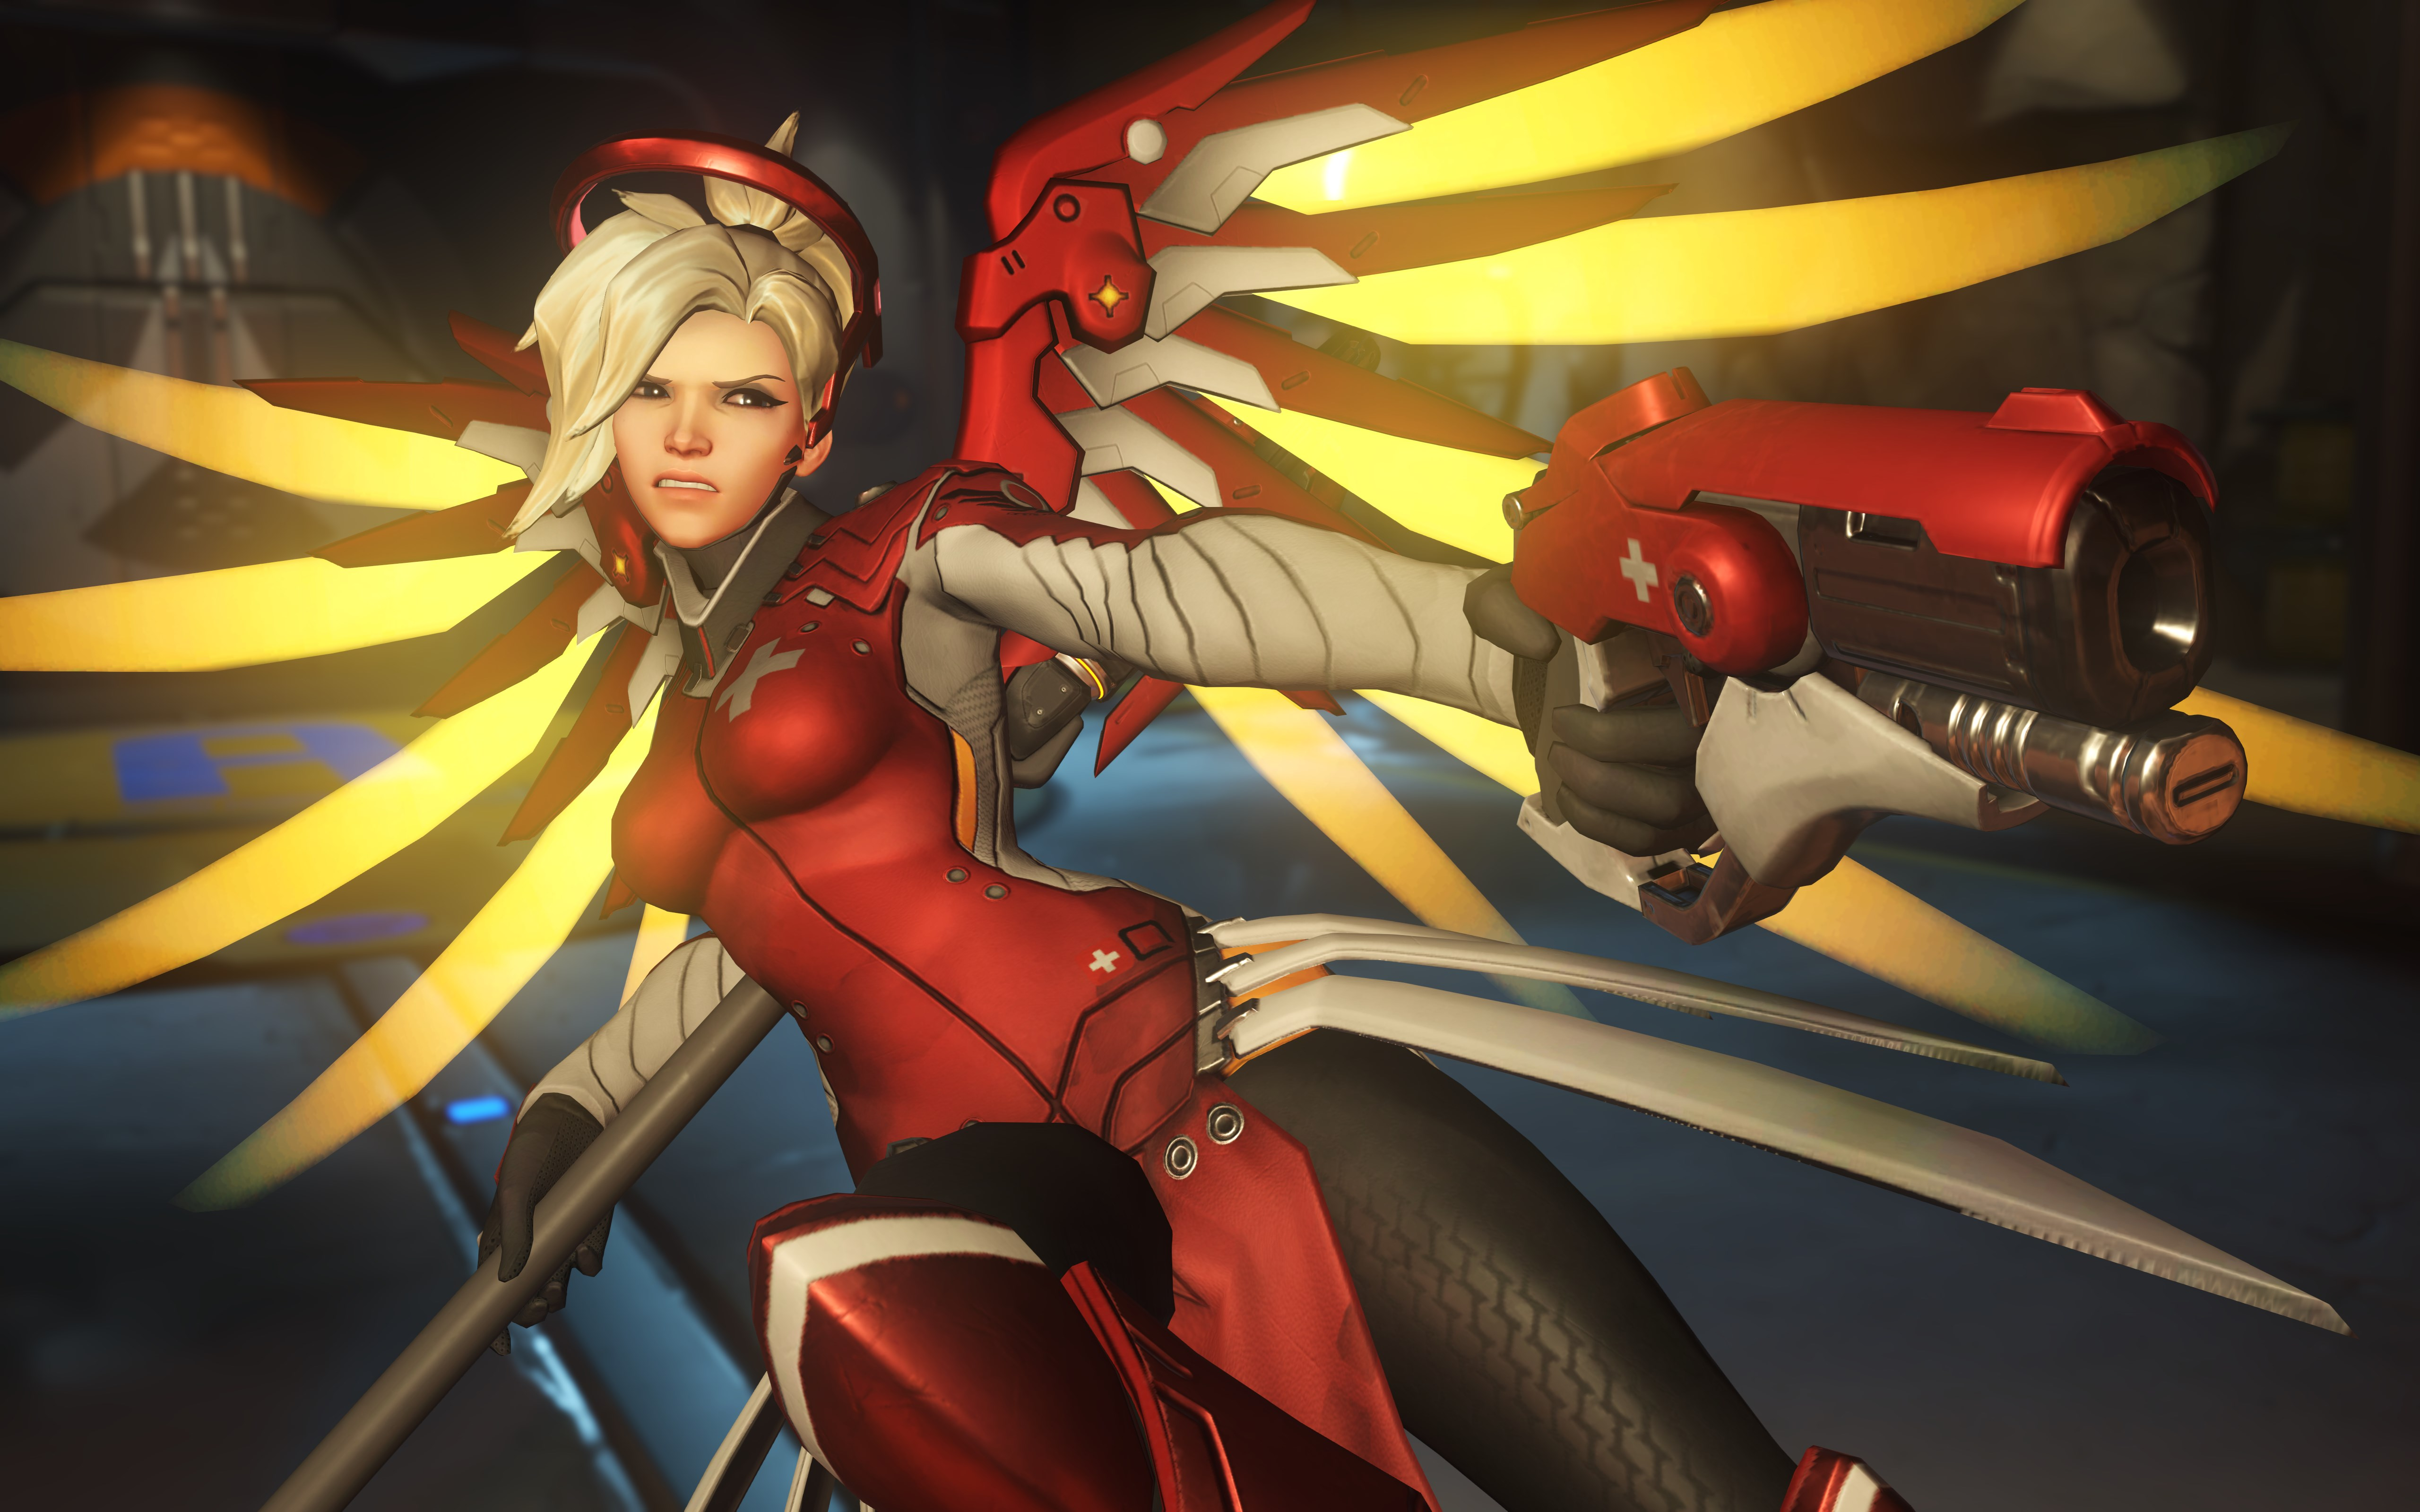 Overwatch mercy hd games 4k wallpapers images - Overwatch christmas wallpaper ...